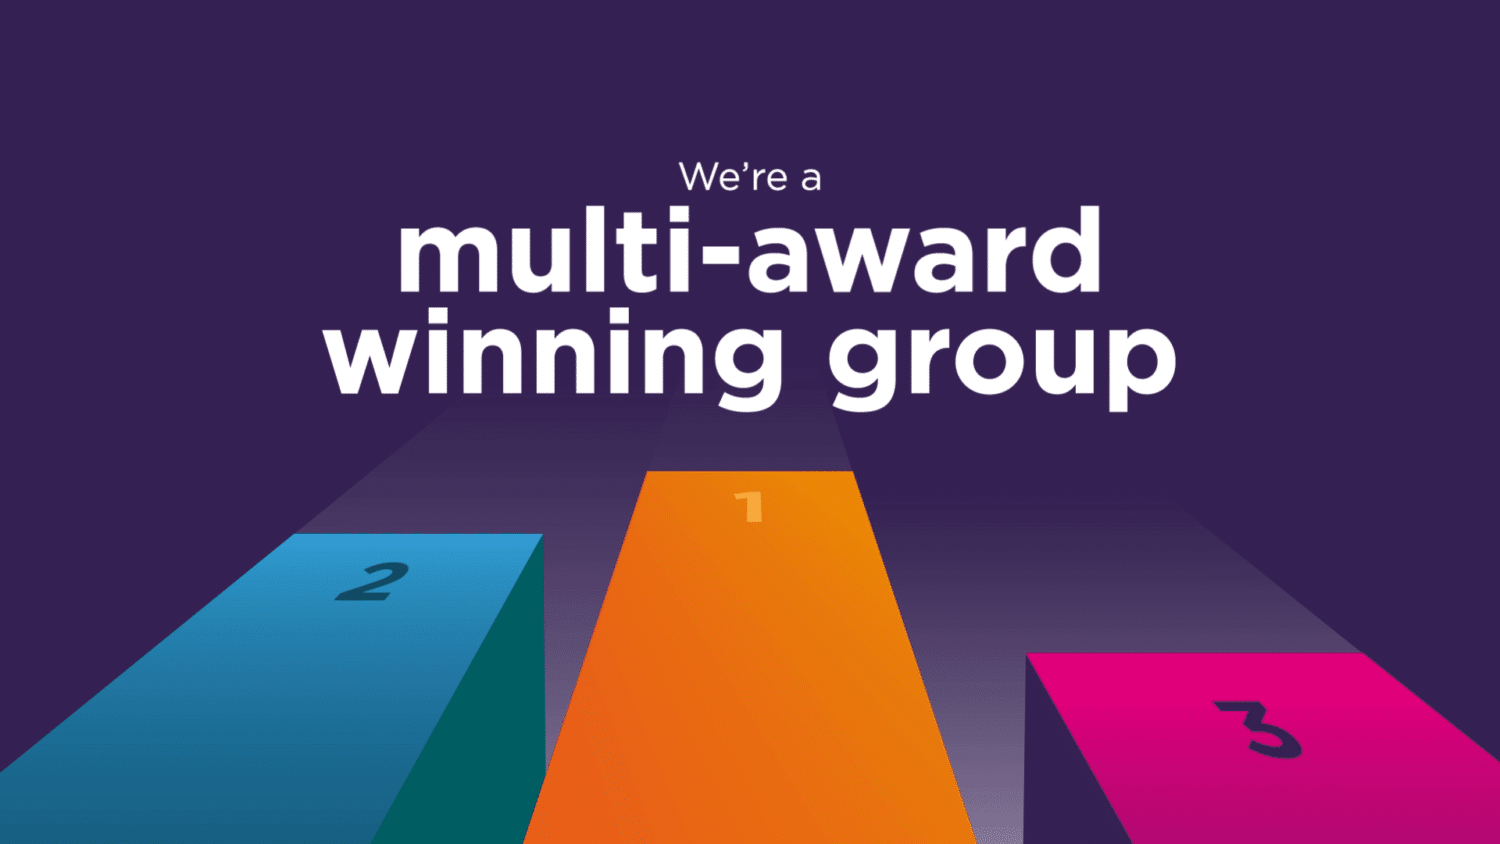 Embark Group Animated Promotional Film as as Award Winning Group